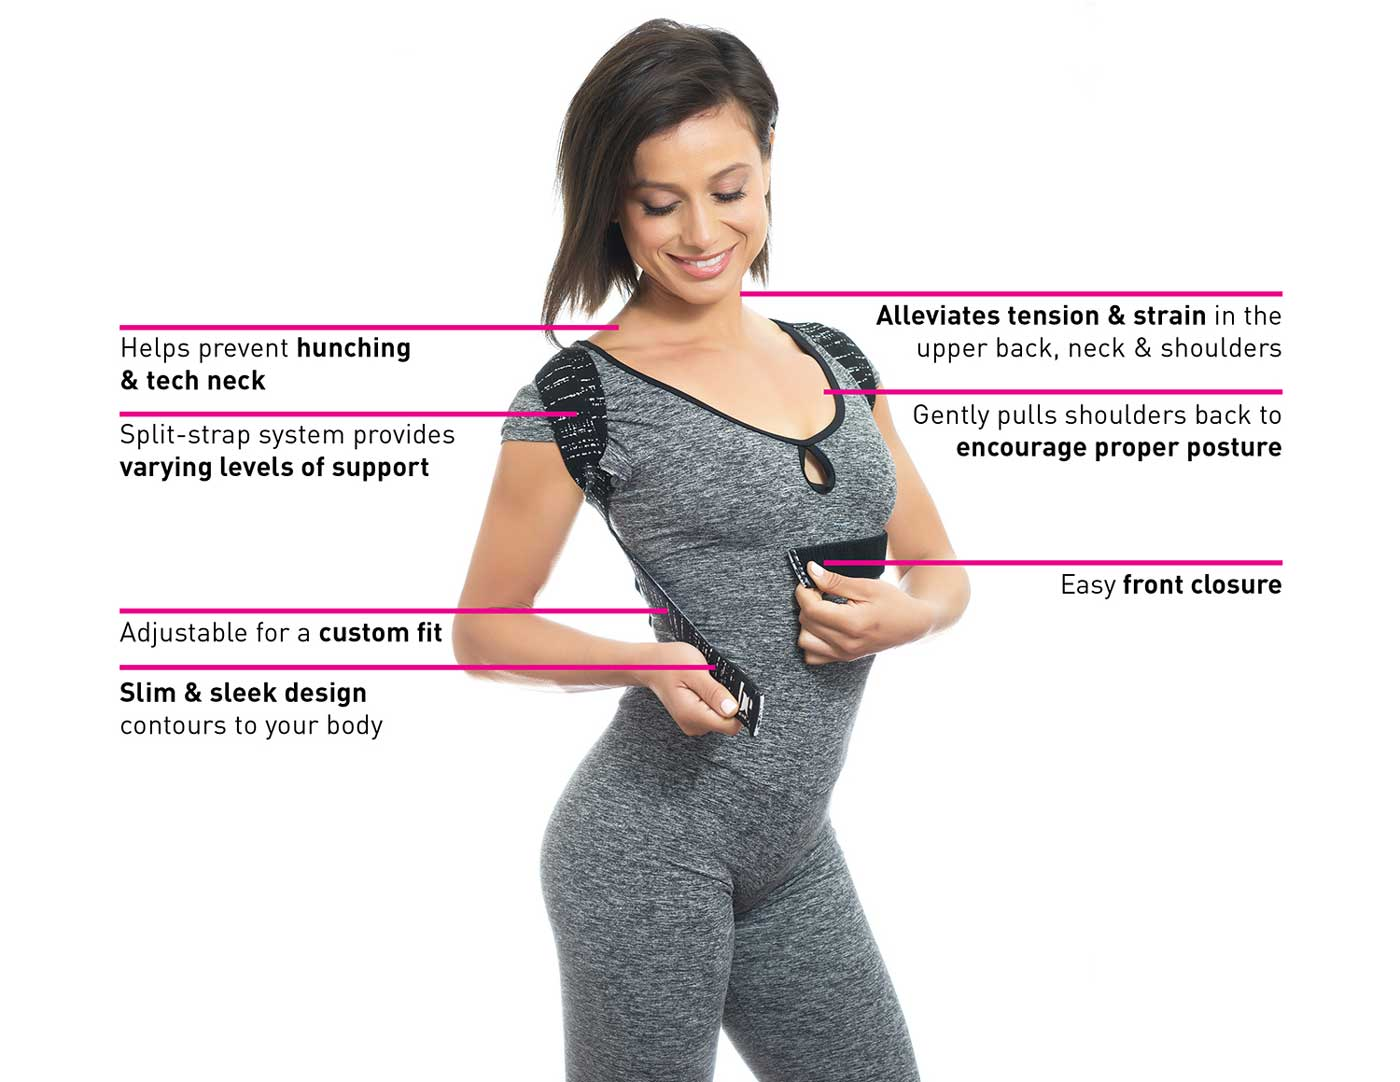 back-embrace-benefits-for-better-posture.jpg